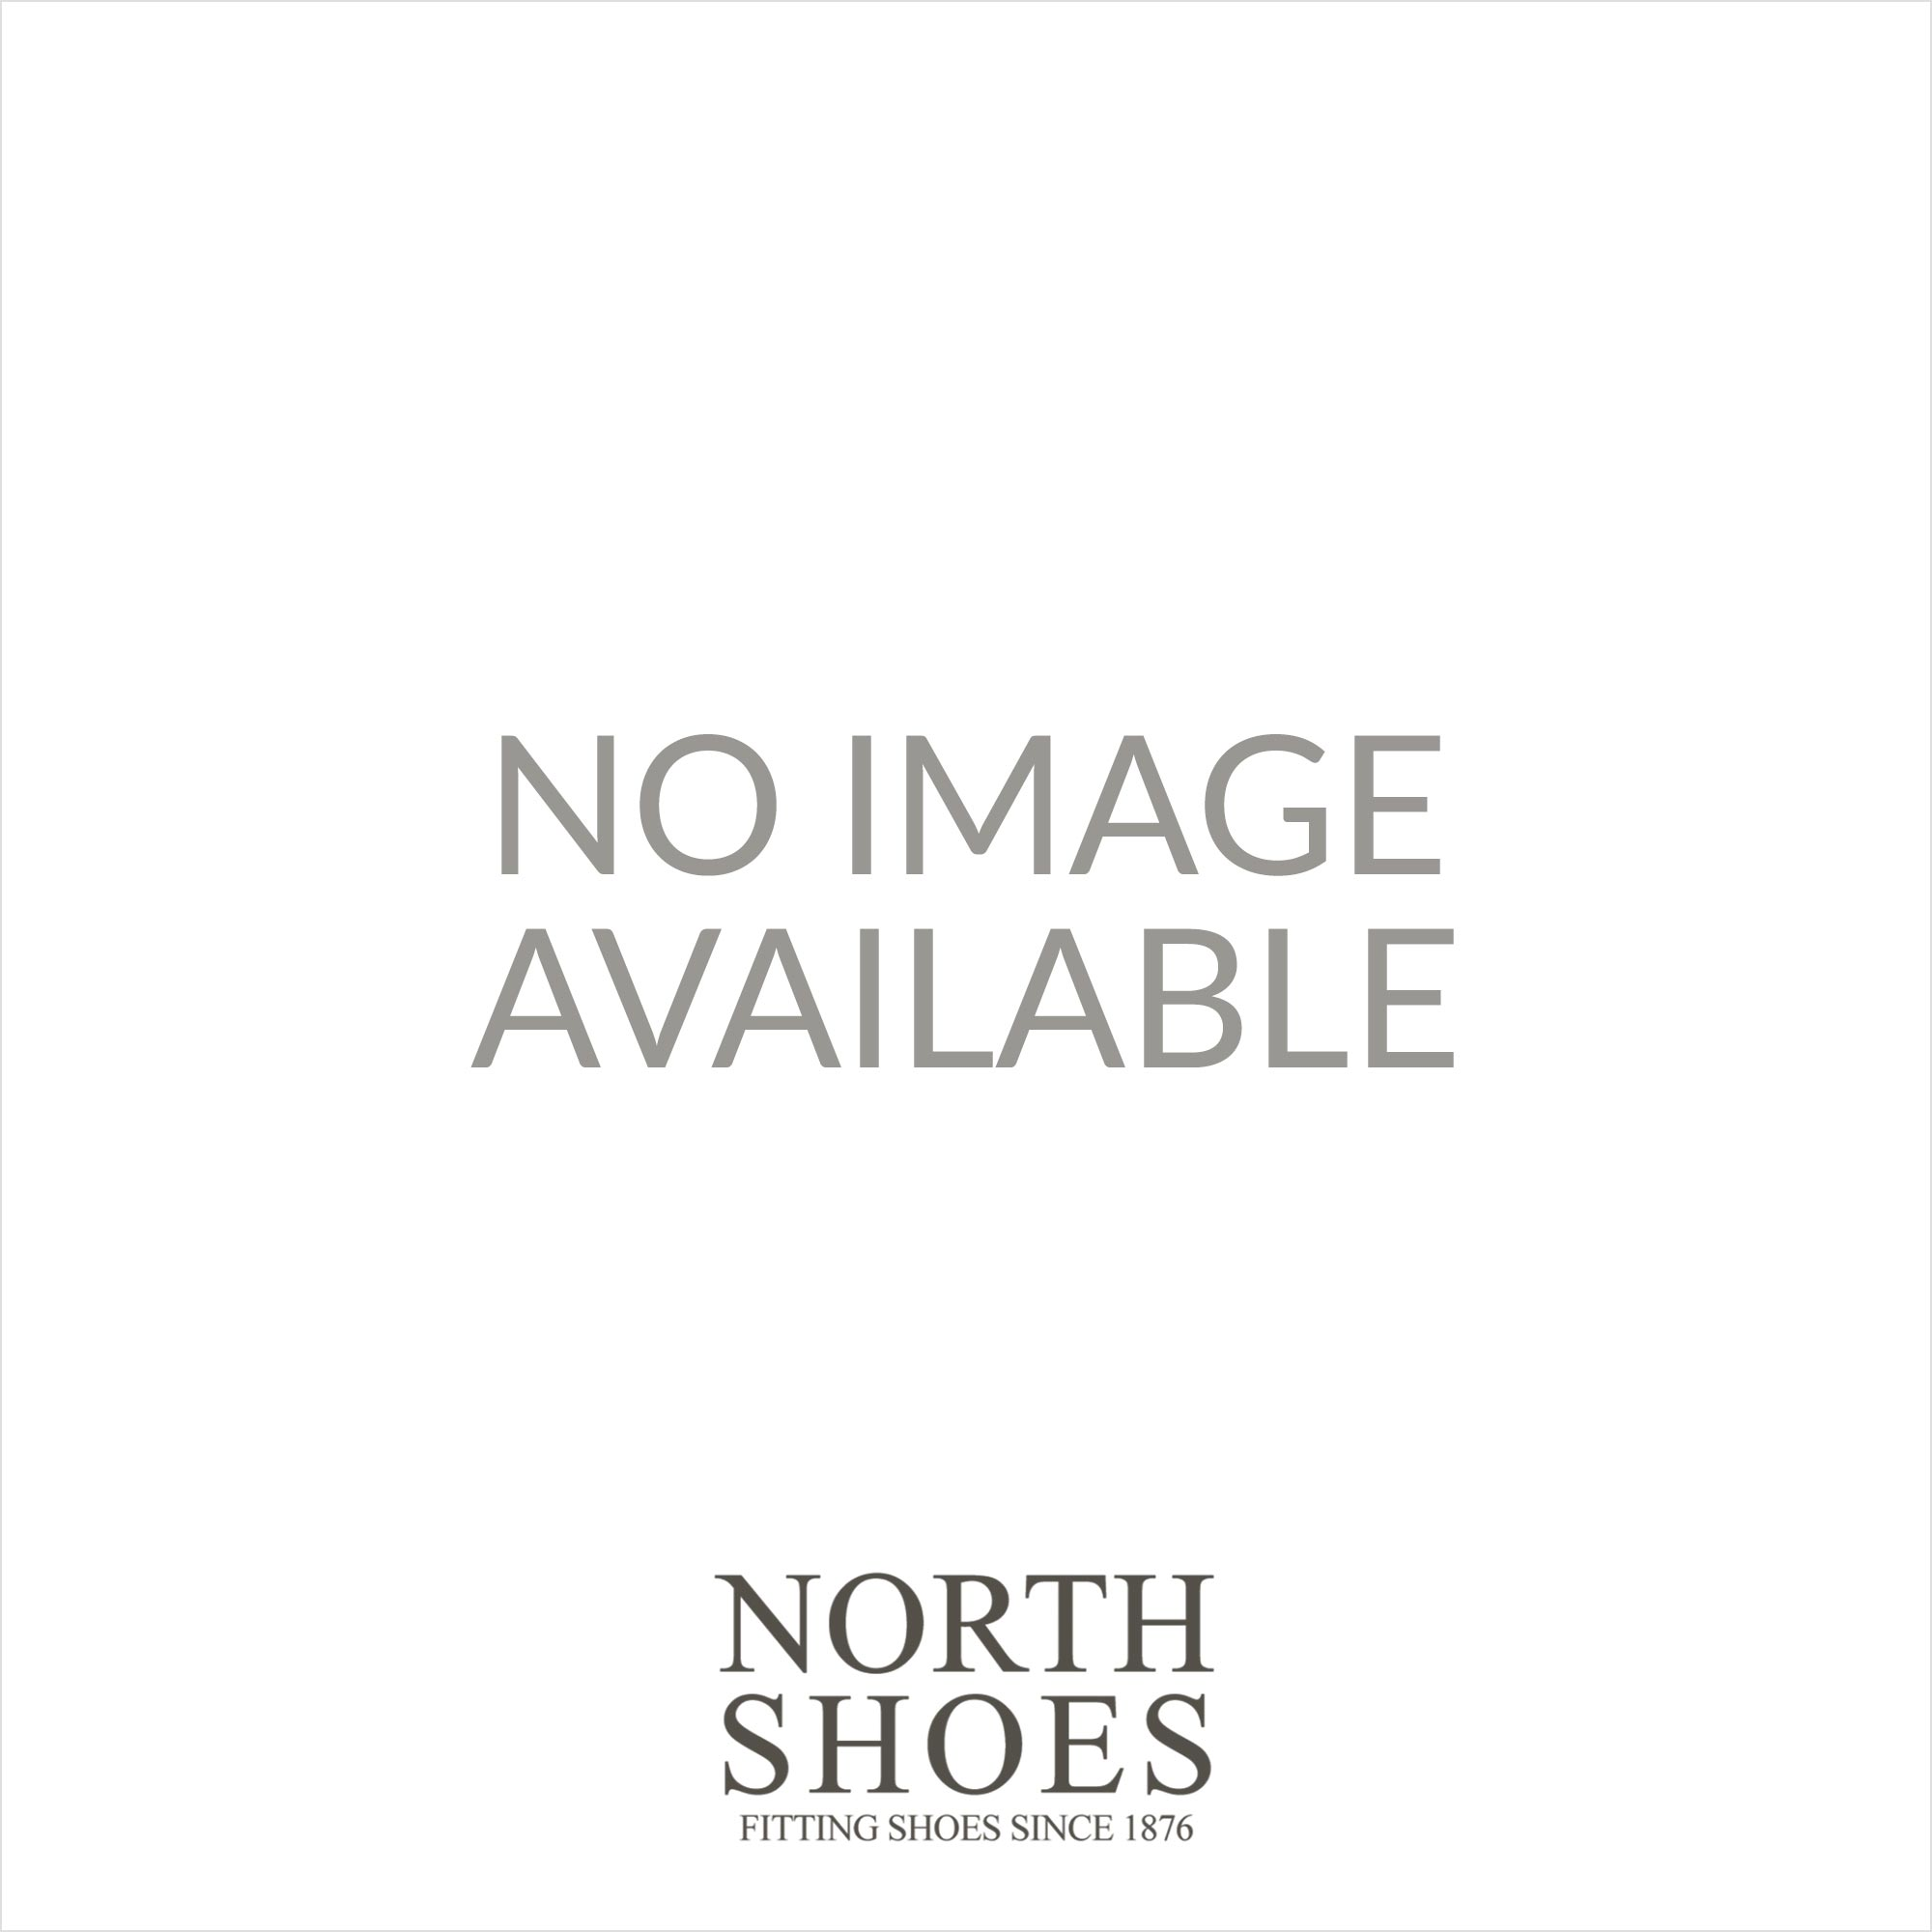 4c9e0190f6c0 Clarks Rusty Rizz Blush Pink Leather Womens Sling Back Wedge Sandals -  Clarks from North Shoes UK